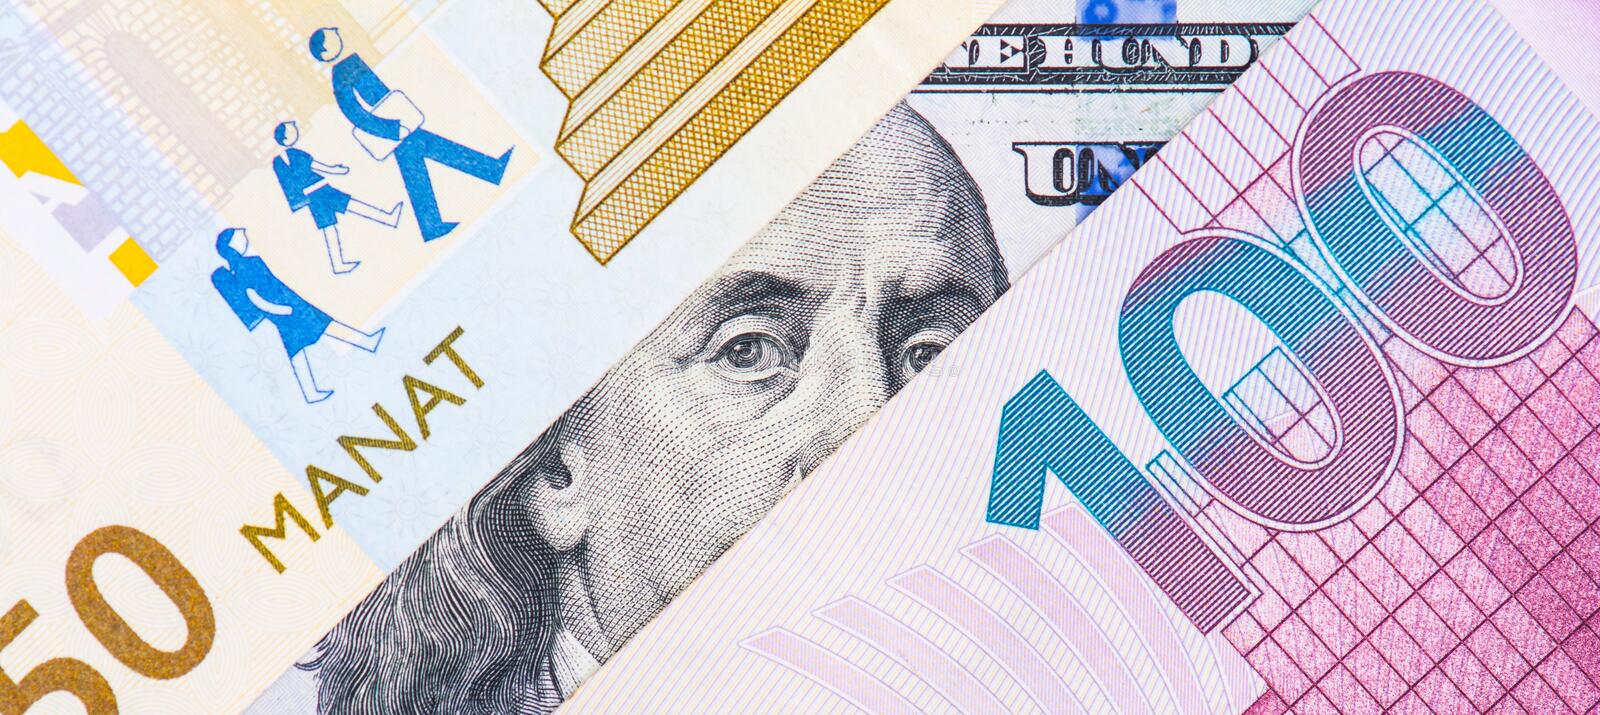 Devaluation of manat, exchange. Devaluation of national currency of Azerbaijan stock photo